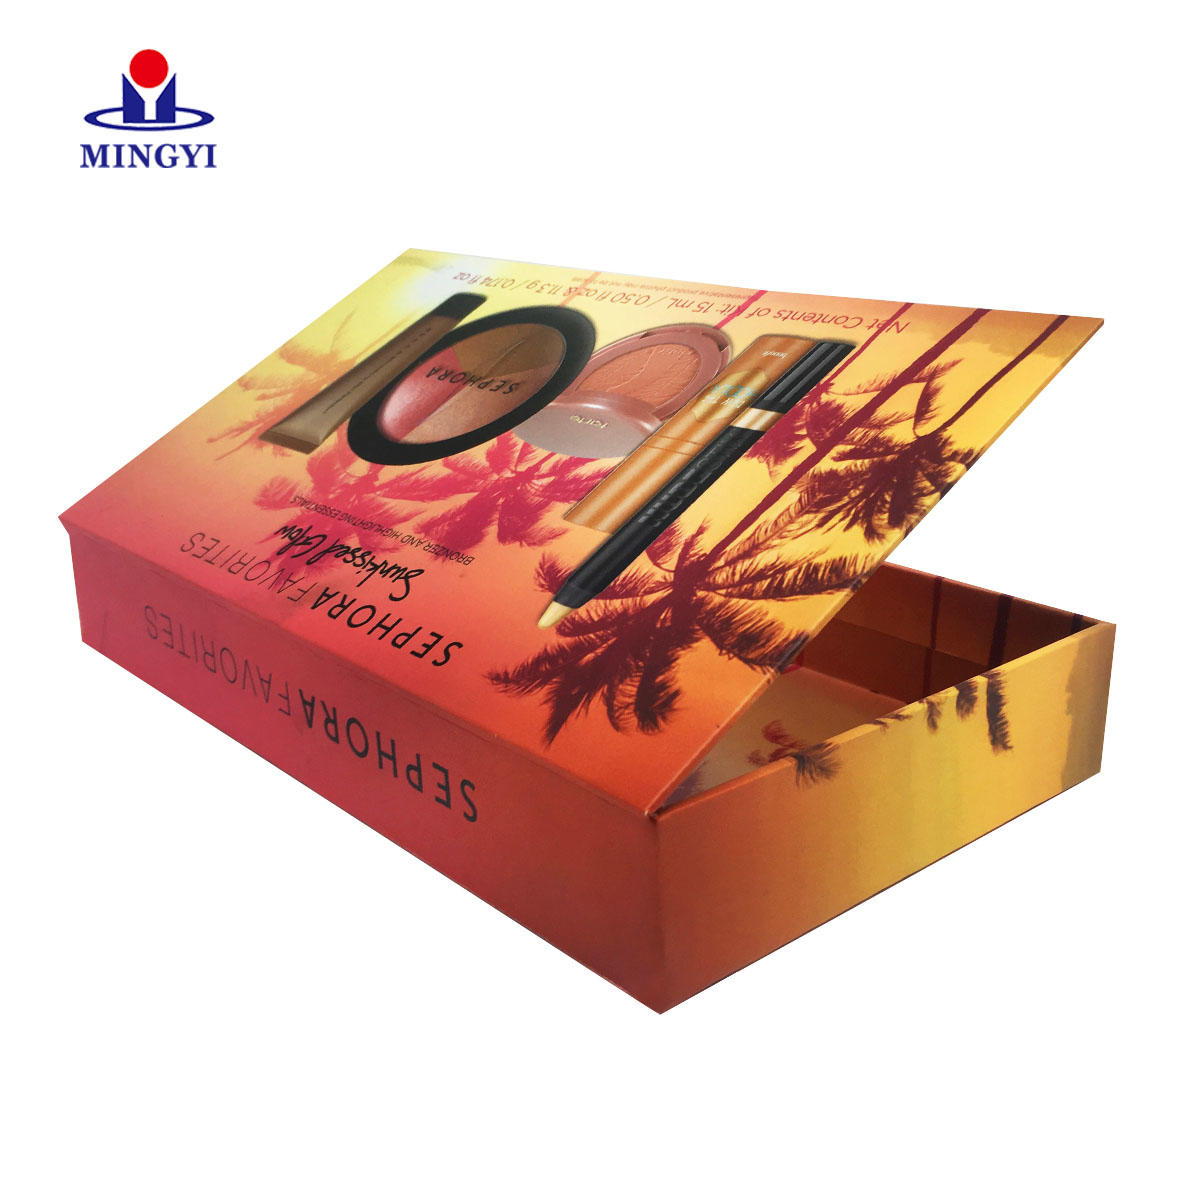 products wooden hard gift boxes magnetic standard Mingyi Printing Brand-Mingyi Printing